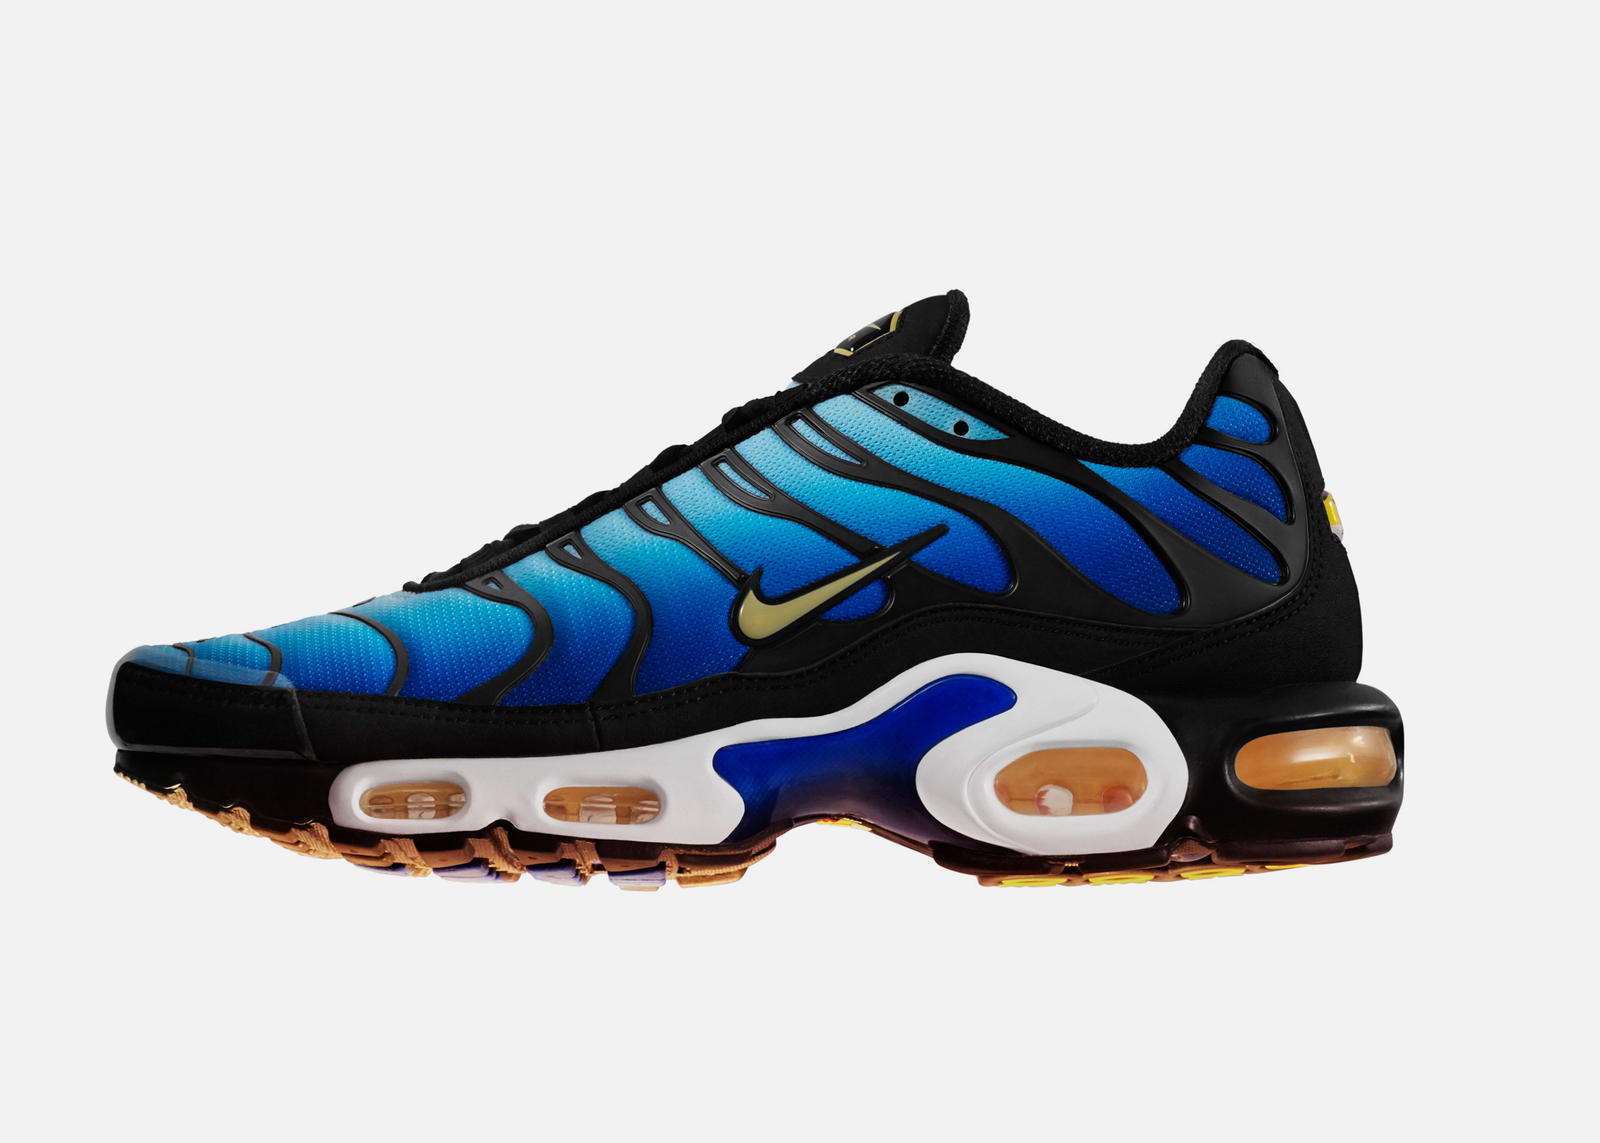 2013 Just It Corsa Do Scarpe Canzone Agosto Nike Da